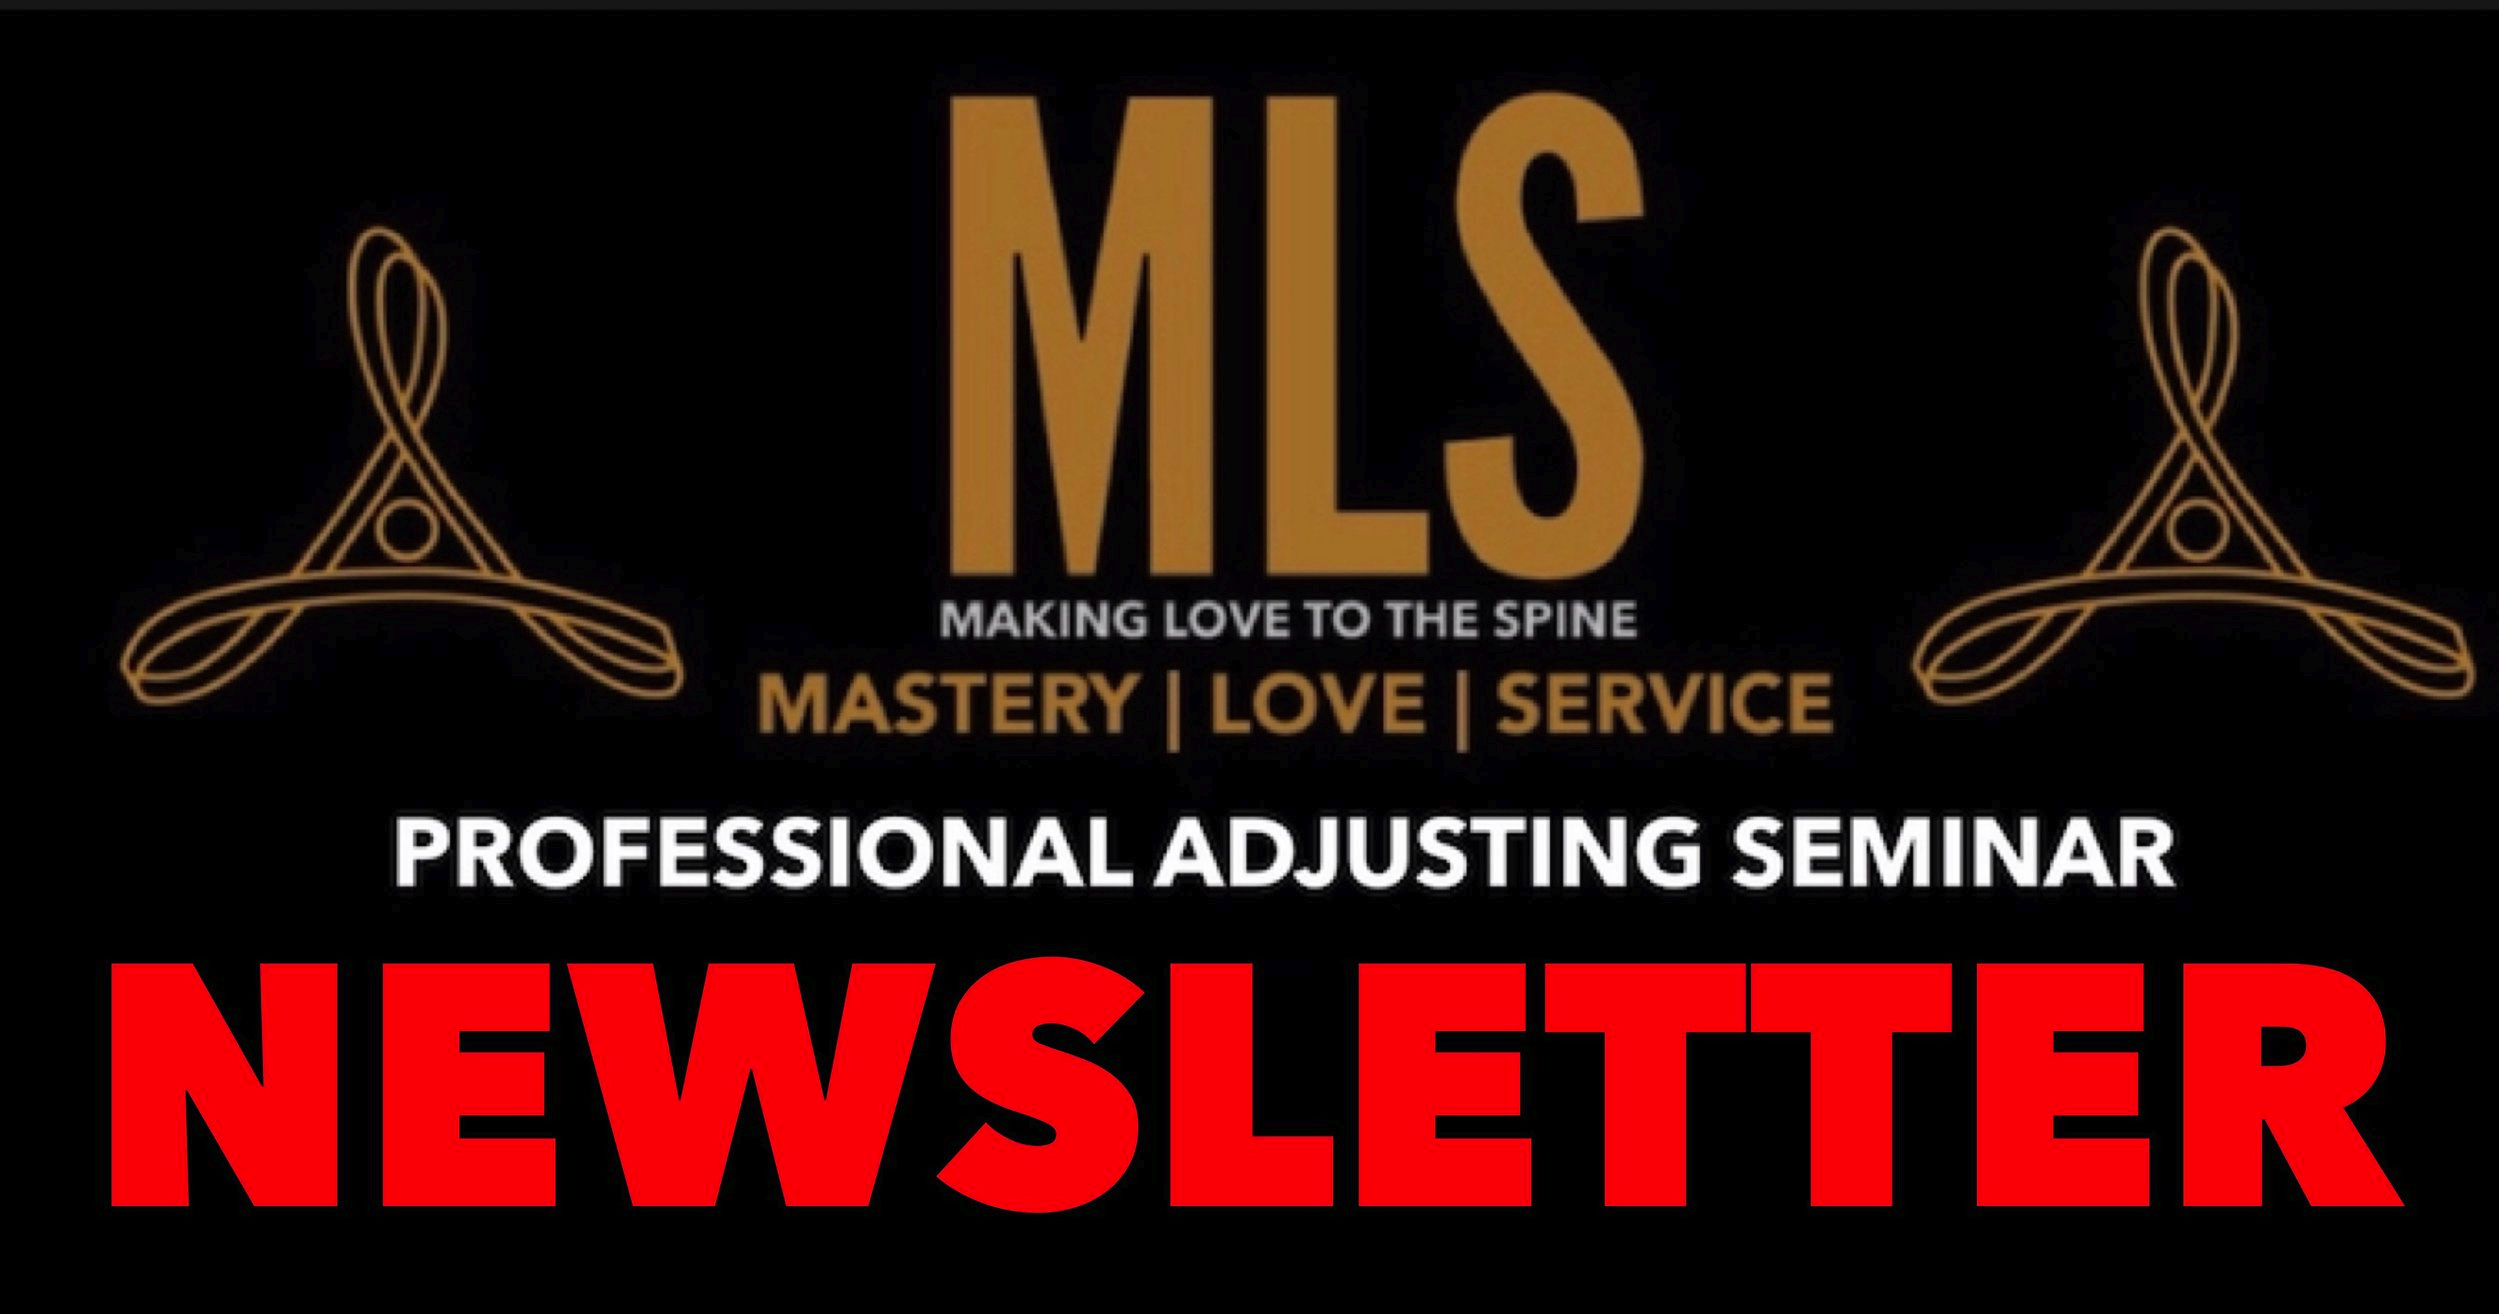 MLS NEWSLETTER